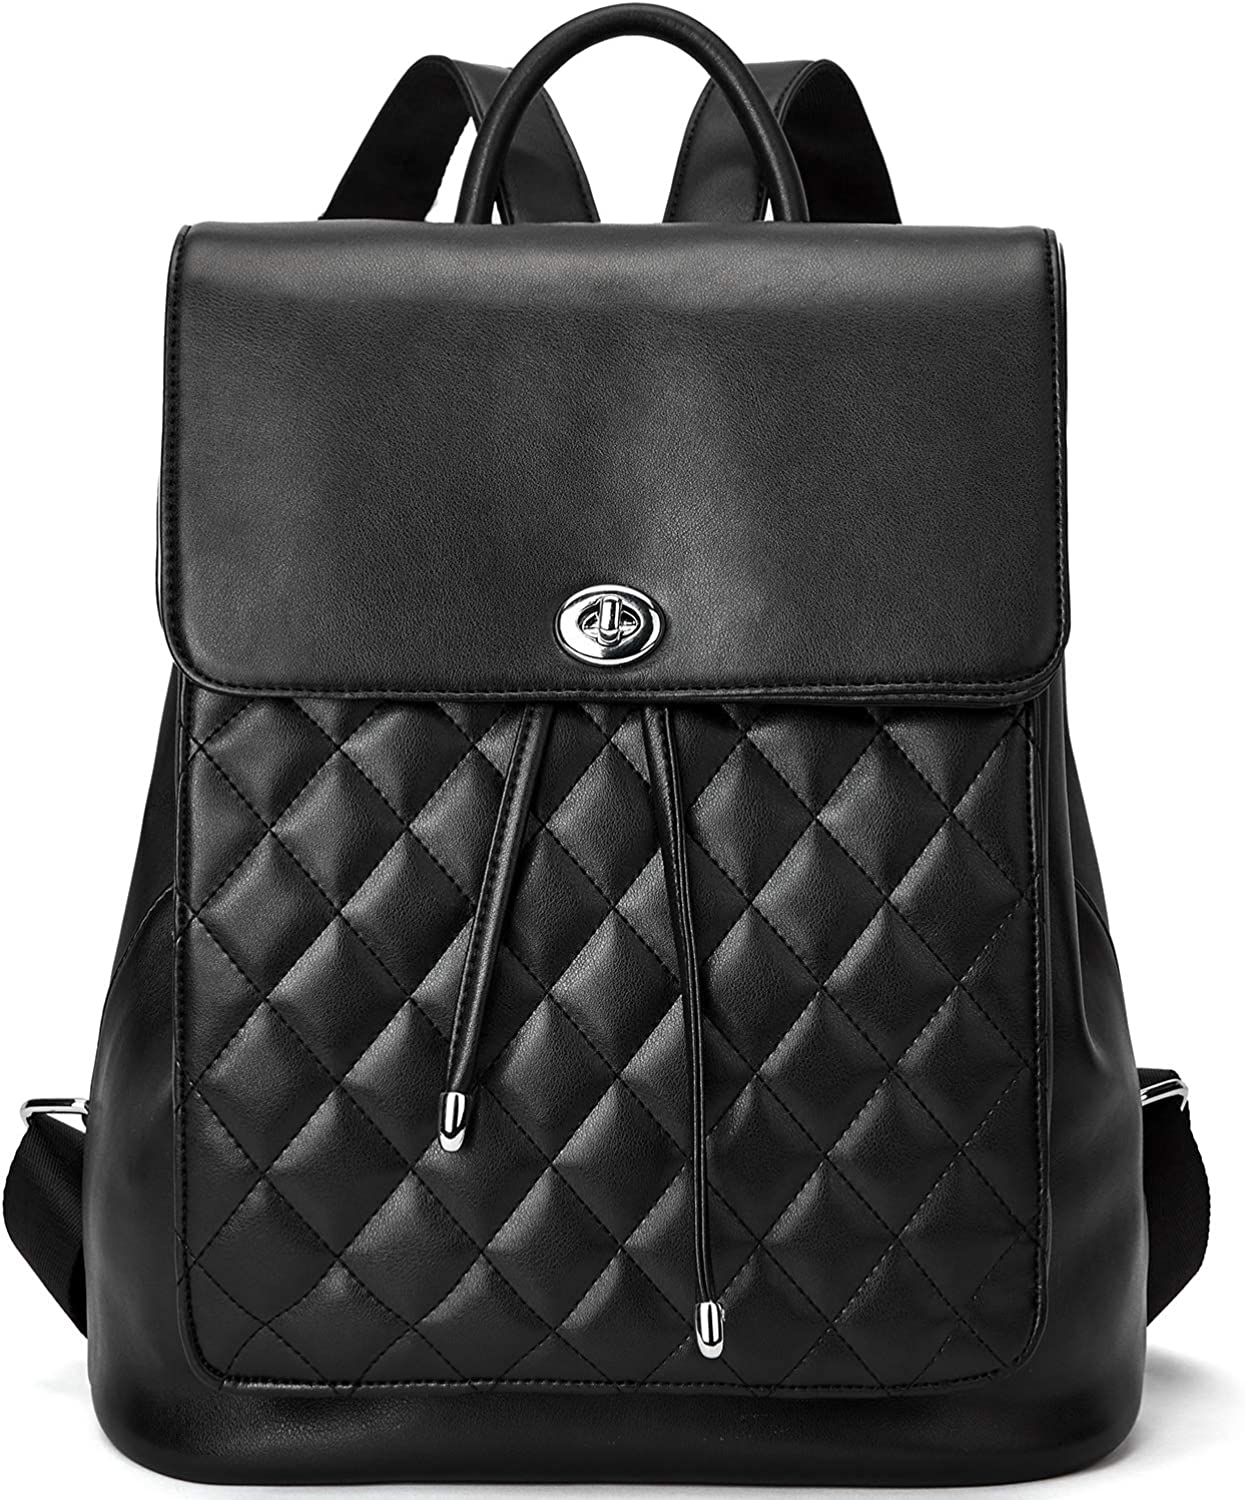 BOSTANTEN Genuine Leather Backpack Purse for Women Casual College Satchel Fashion Travel Bags